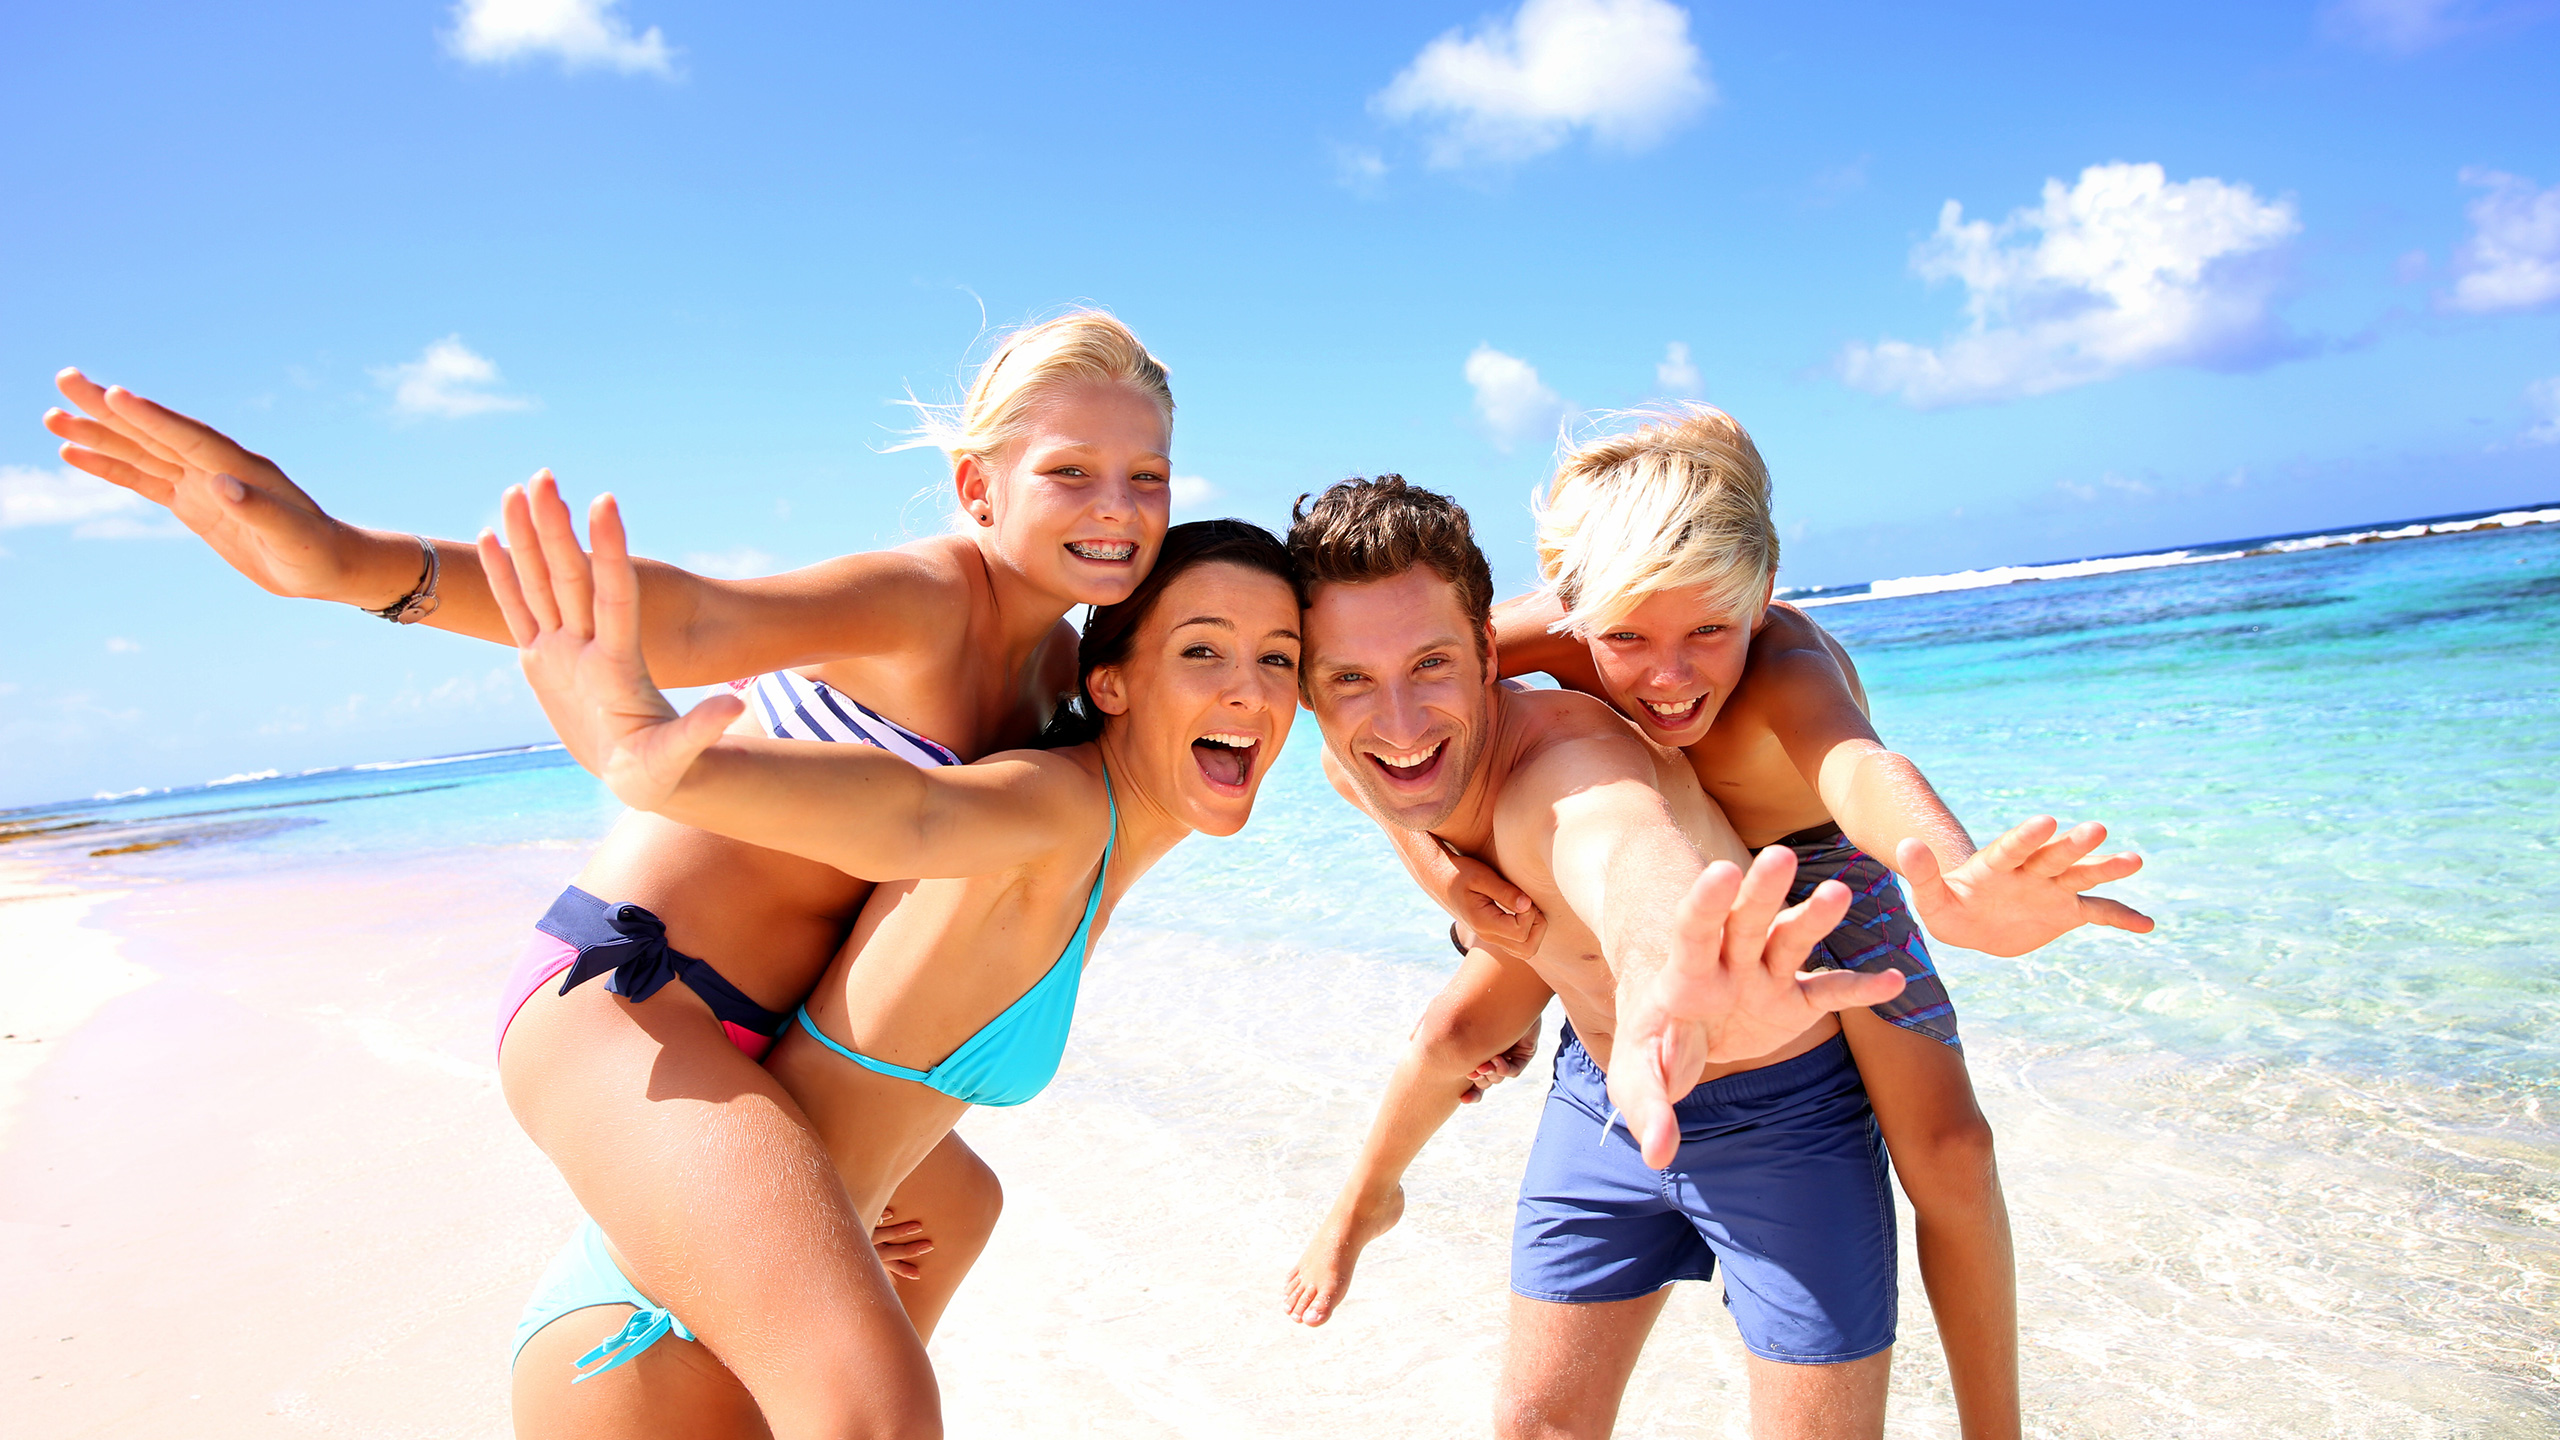 This Summer Holiday Is The Ideal time For A Vietnam Family Holiday